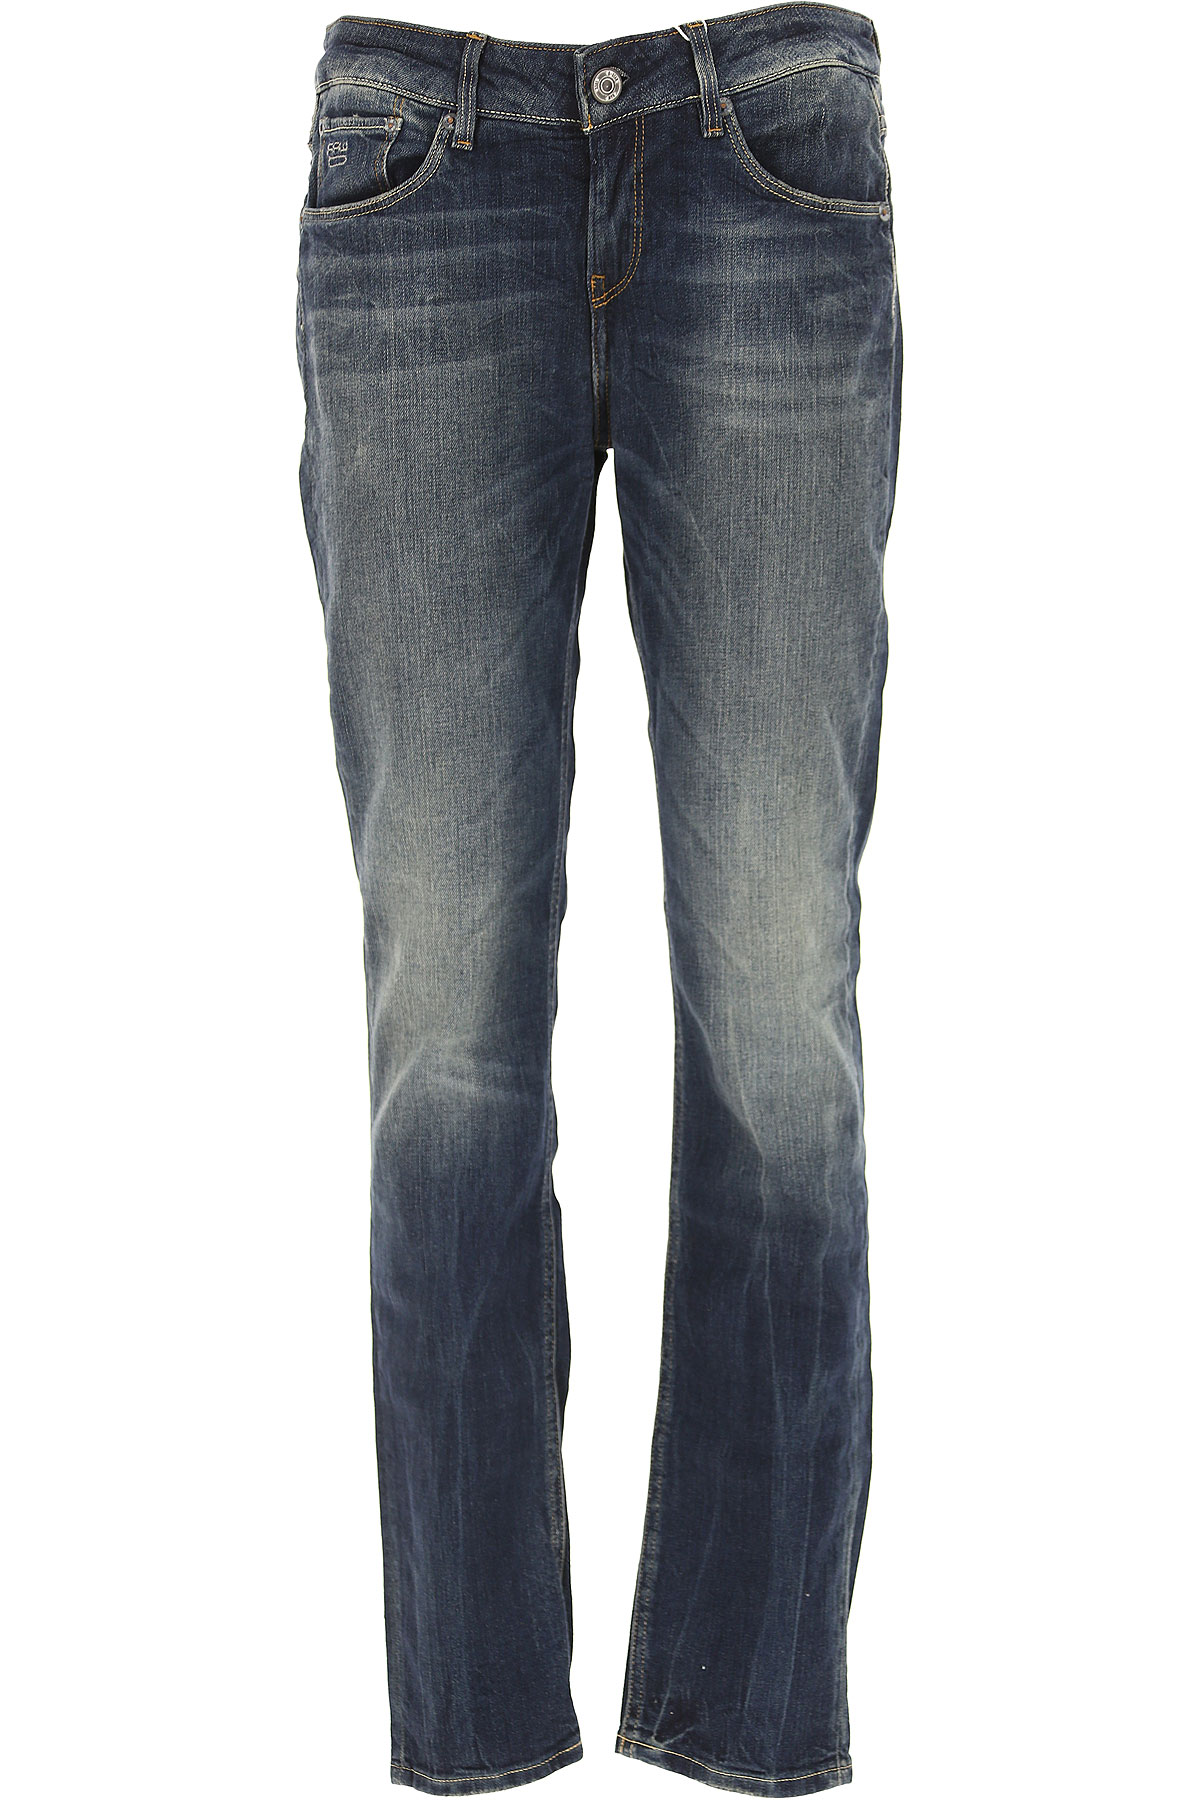 G-Star Jeans On Sale in Outlet, Denim, Cotton, 2017, 29 30